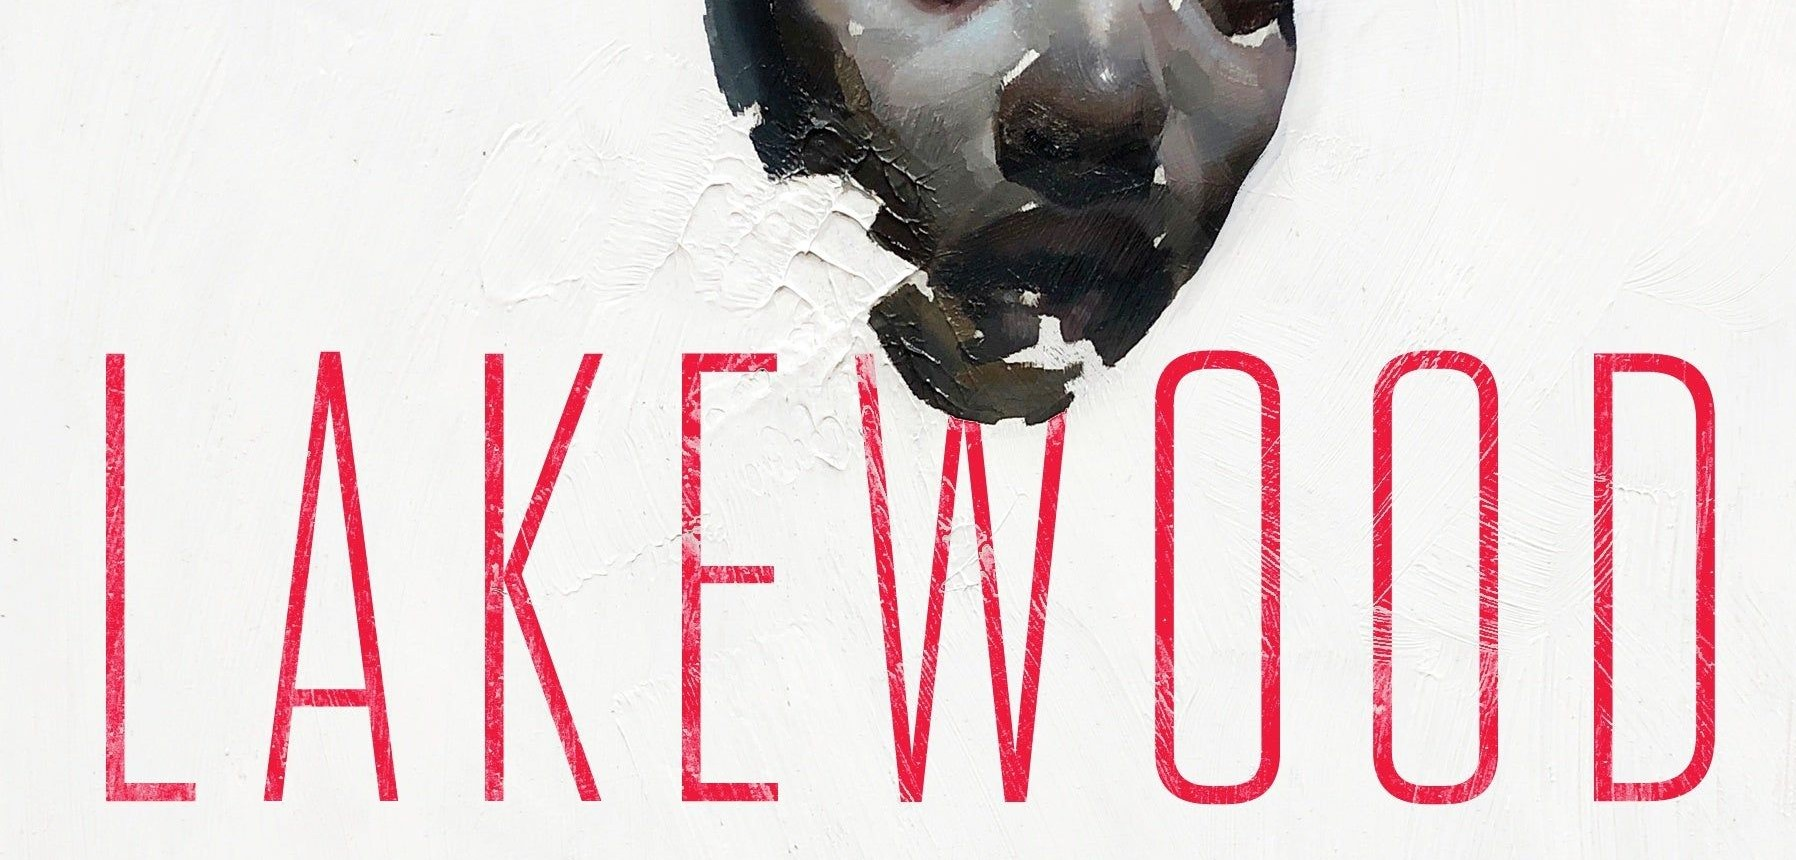 Book Cover for Lakewood by Megan Giddings